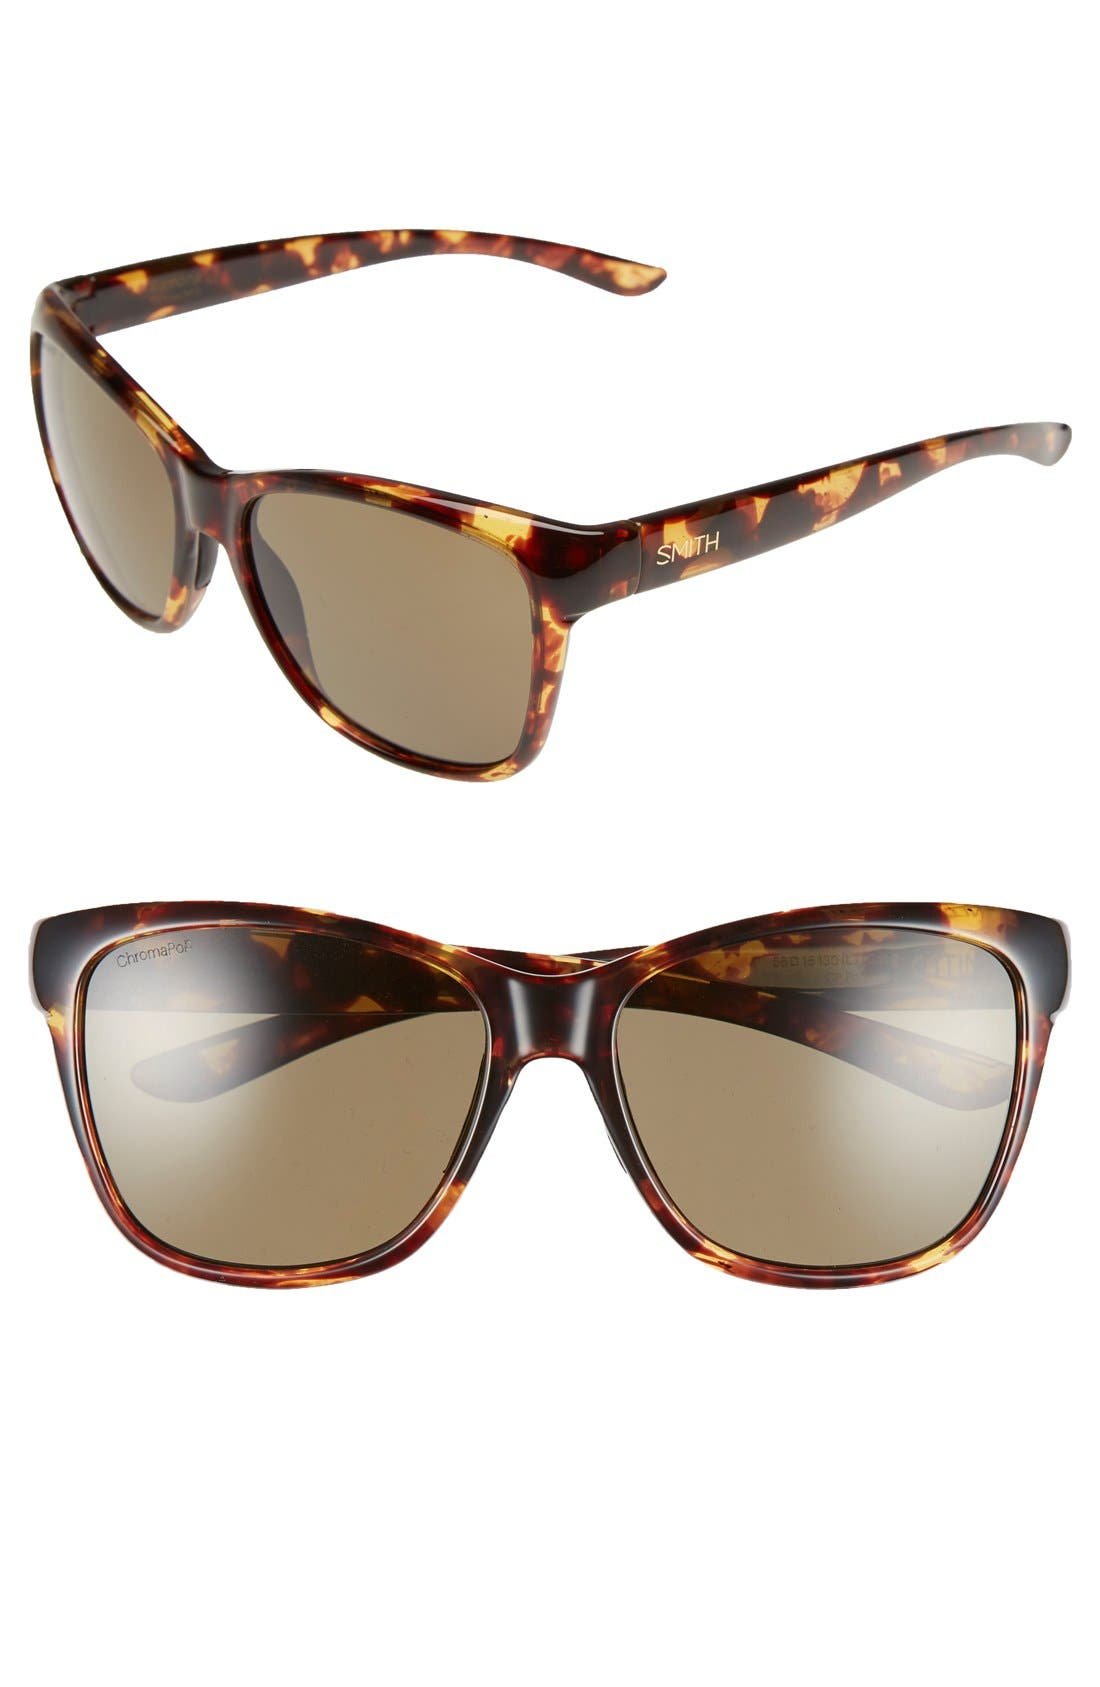 Main Image - Smith 'Ramona' 56mm ChromaPop Polarized Sunglasses